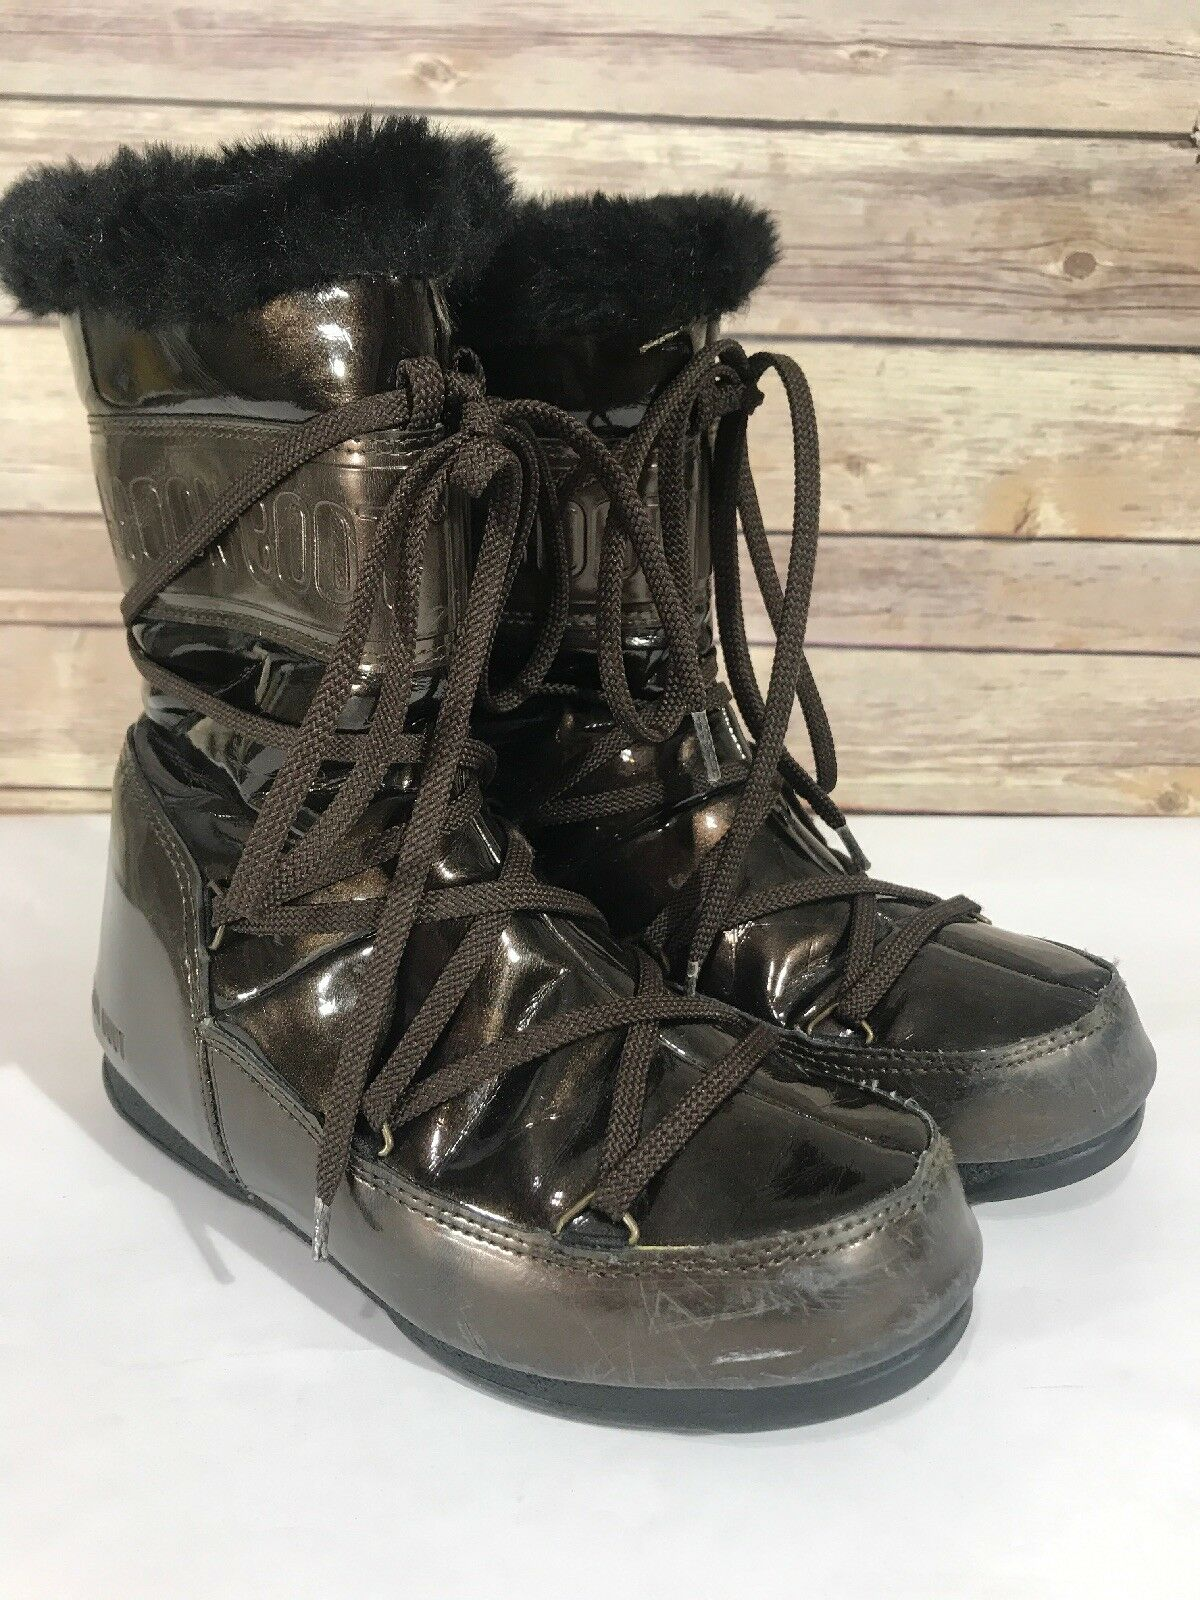 Moon Boots Tecnica Brown Size 4 Women's Girl Youth Winter Boots